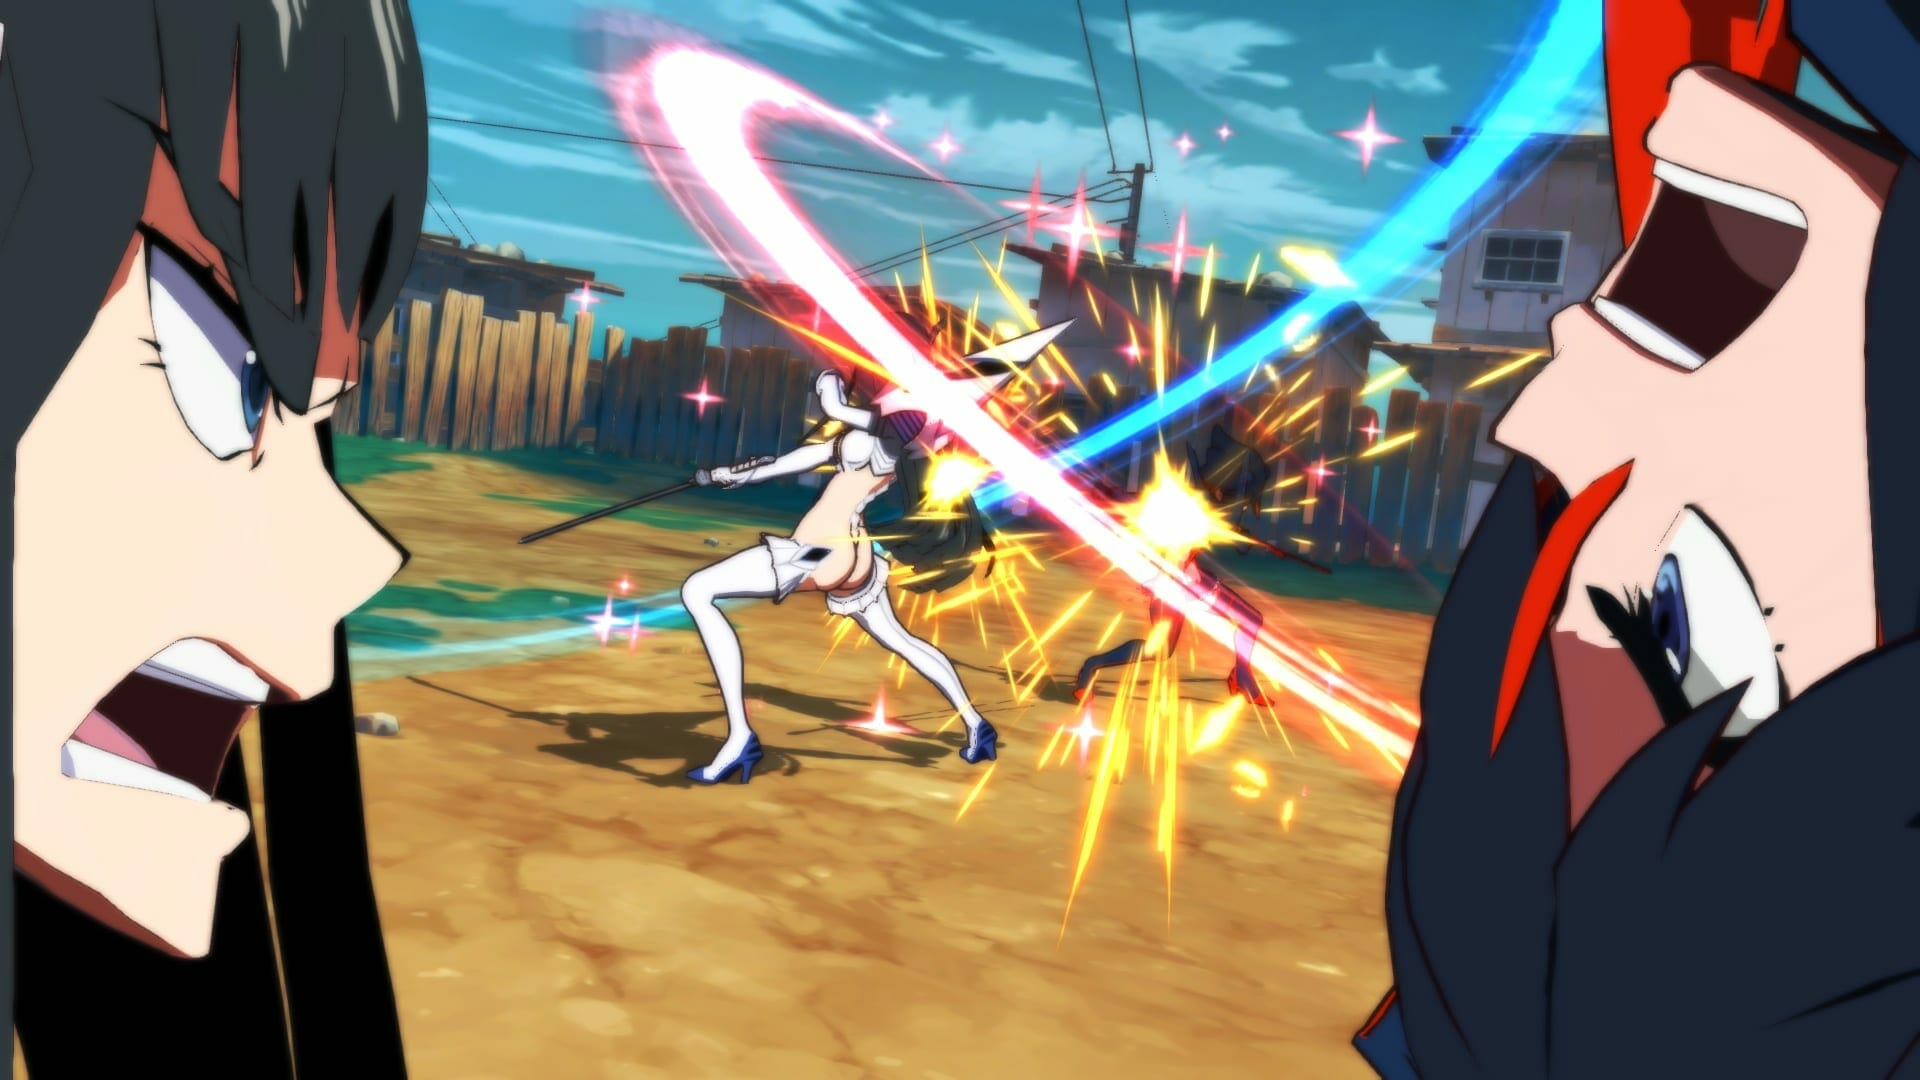 Kill la Kill the Game IF 9 - Arc System Works Announcement Coming On August 4th: A New Fighting Game?